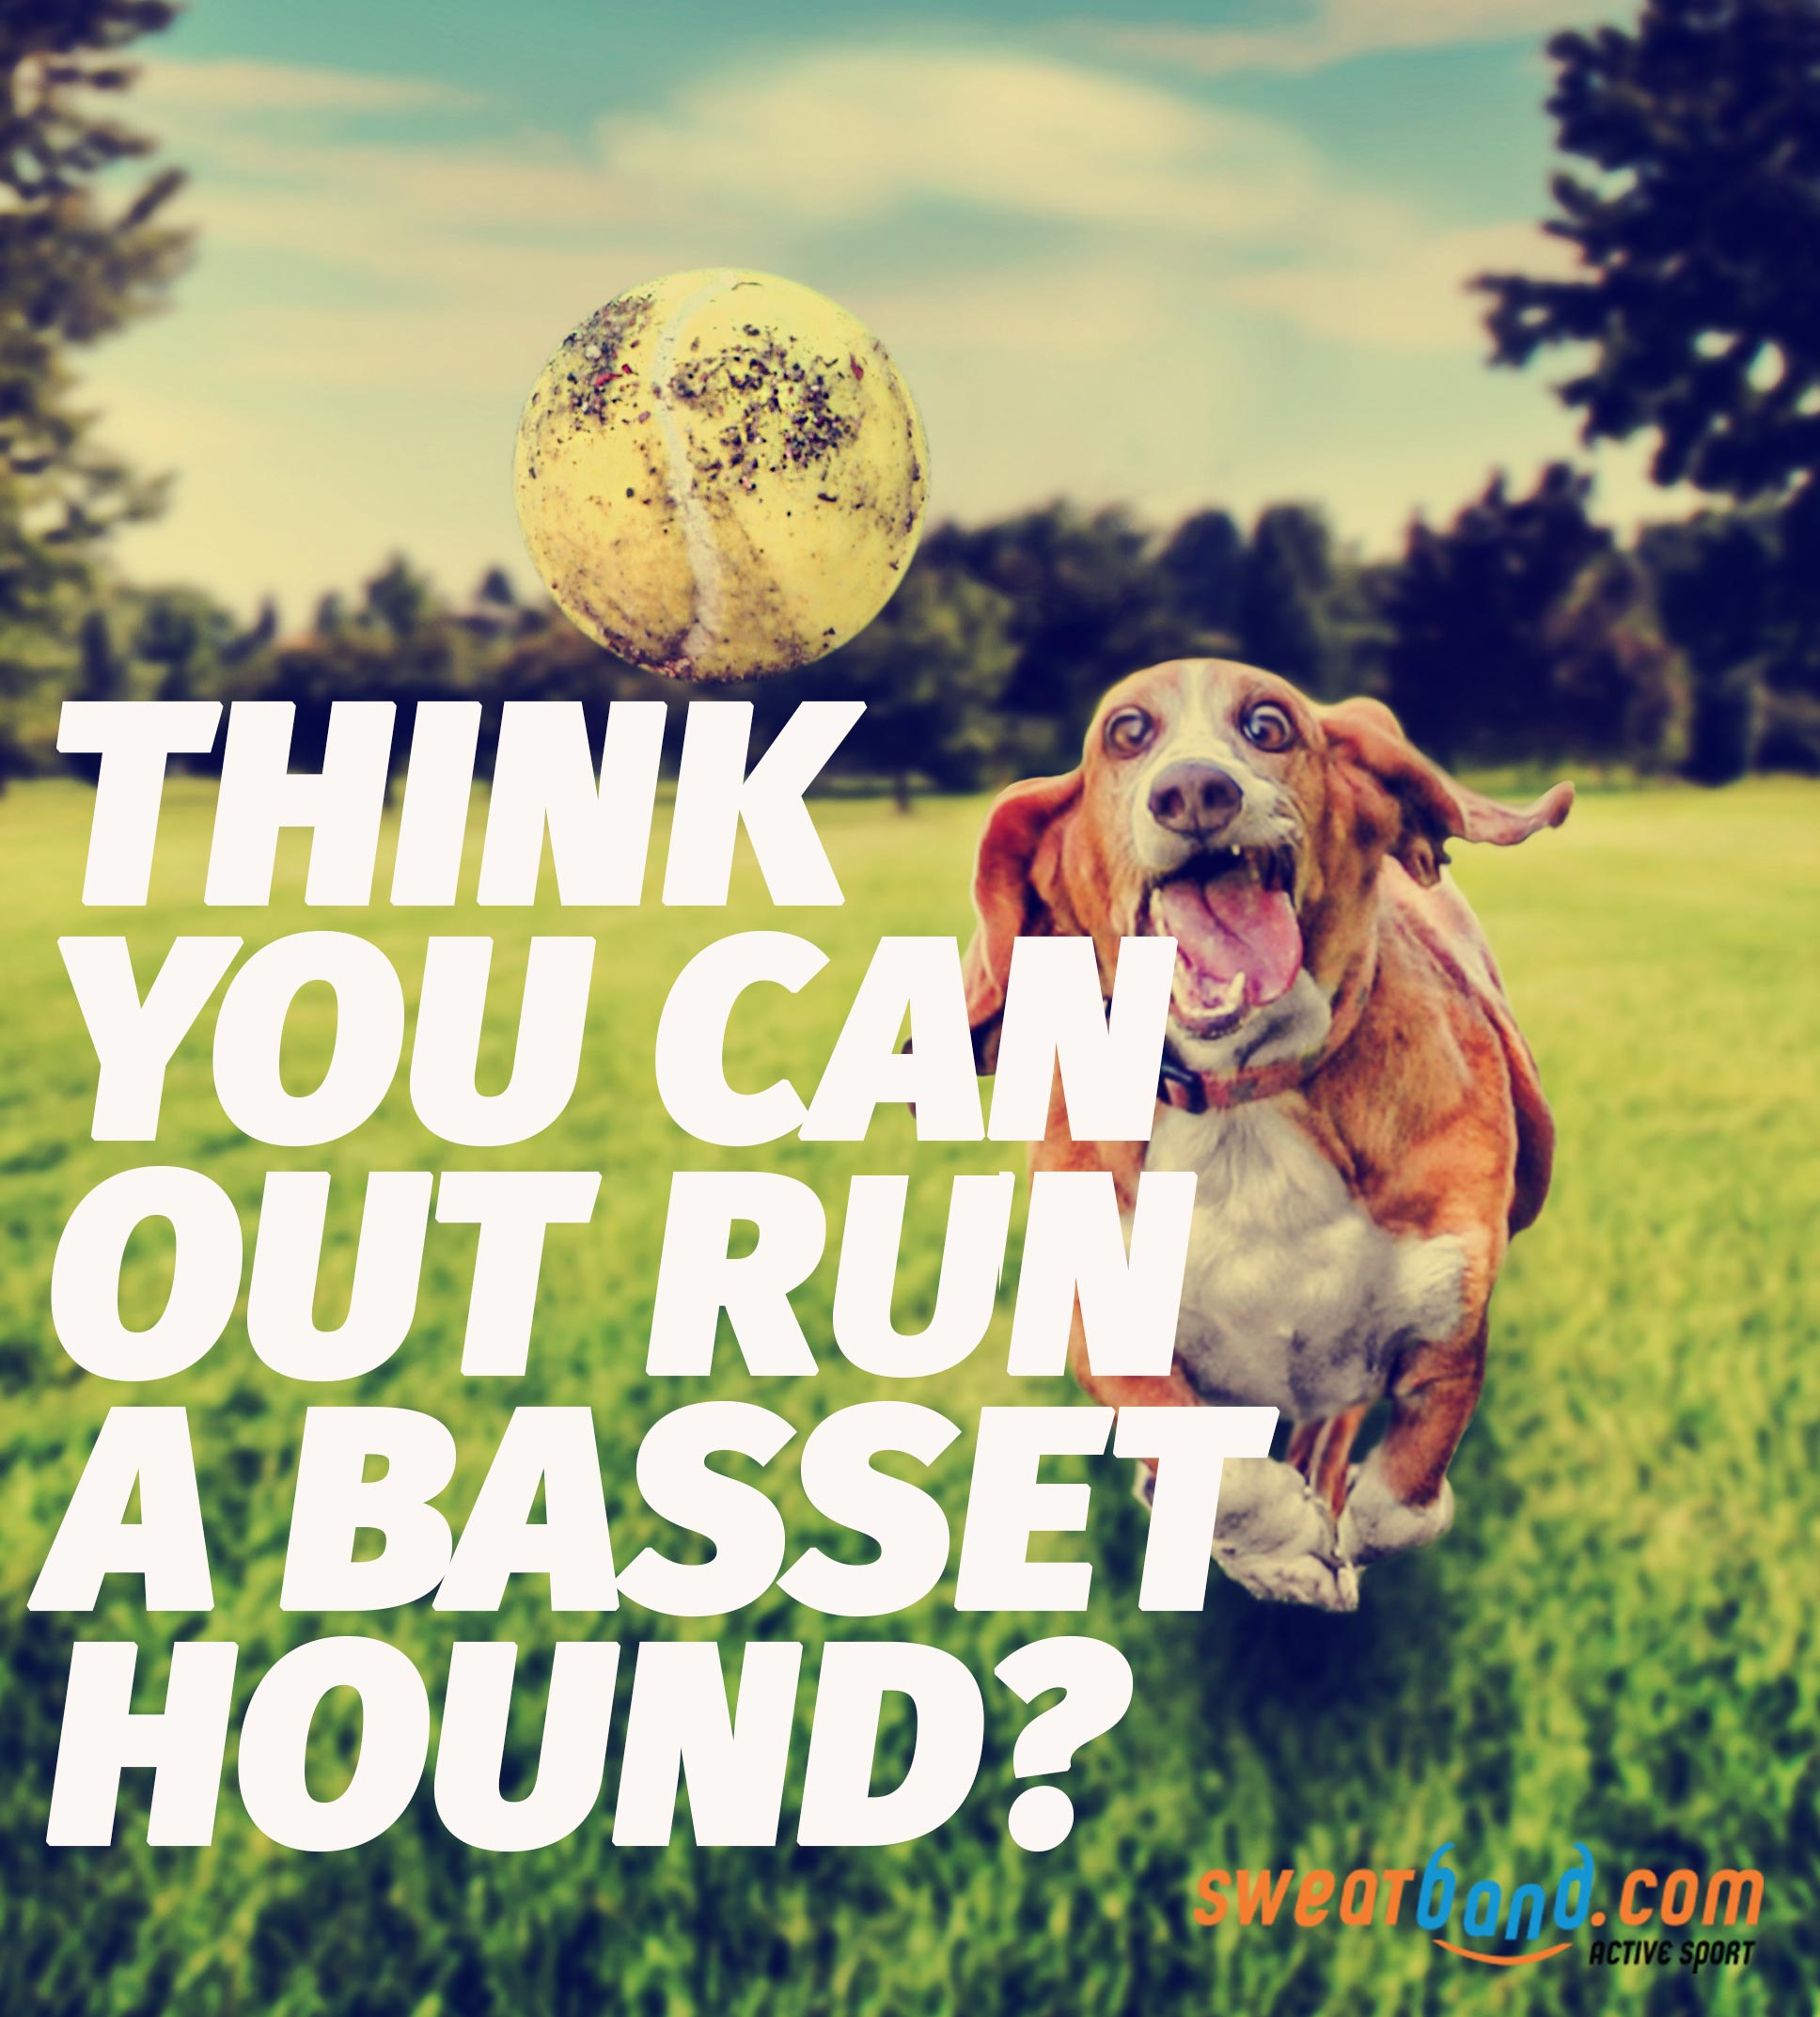 Can you run faster than a dog? If not, what animals could you outrun?